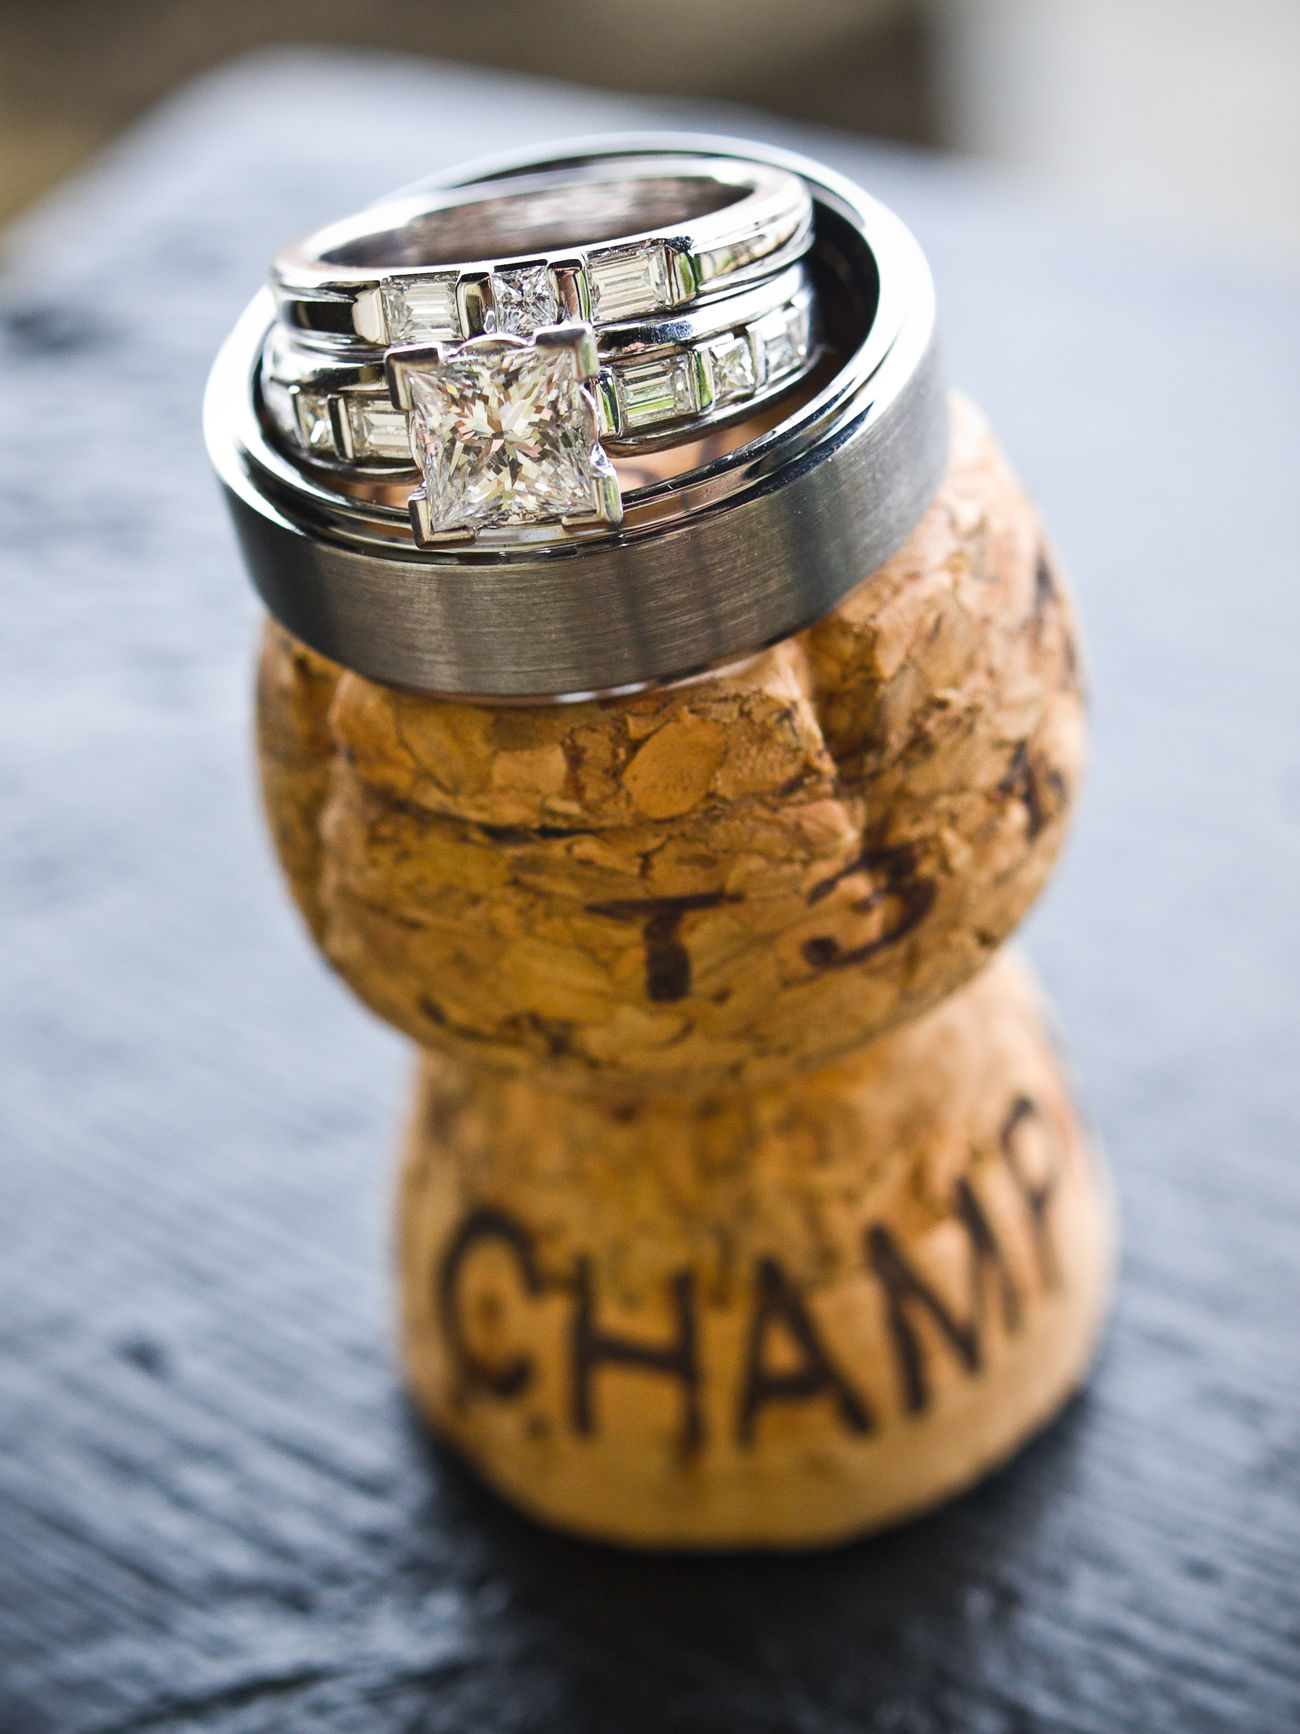 wedding rings Vanuatu Alcohol Bottle Champange Close-up Cork - Stopper Day Diamond Drink Food And Drink No People Outdoors Pacific Red Wine Text Traveling Vanuatu Vivid International Wedding Wedding Rings Wedding Rings. Wine Wine Bottle Wine Cork Winetasting